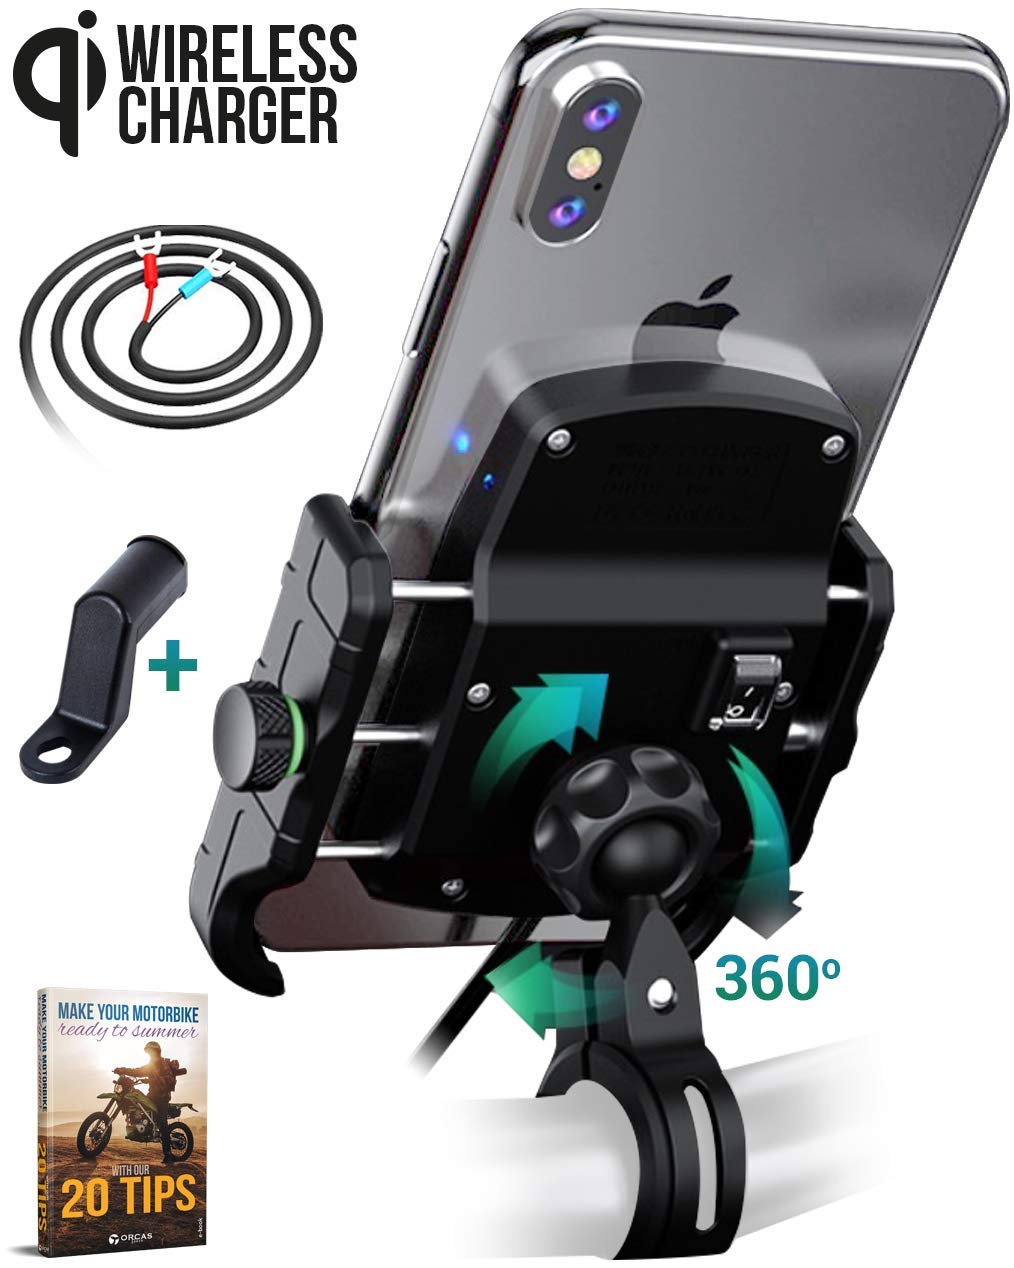 Orcas Motorbike Phone Holder Wireless Charger Motorcycle Mount Cradle Clamp for Handlebar or Mirror, Bicycle, ebike, Scooter Bike, Compatible Huawei